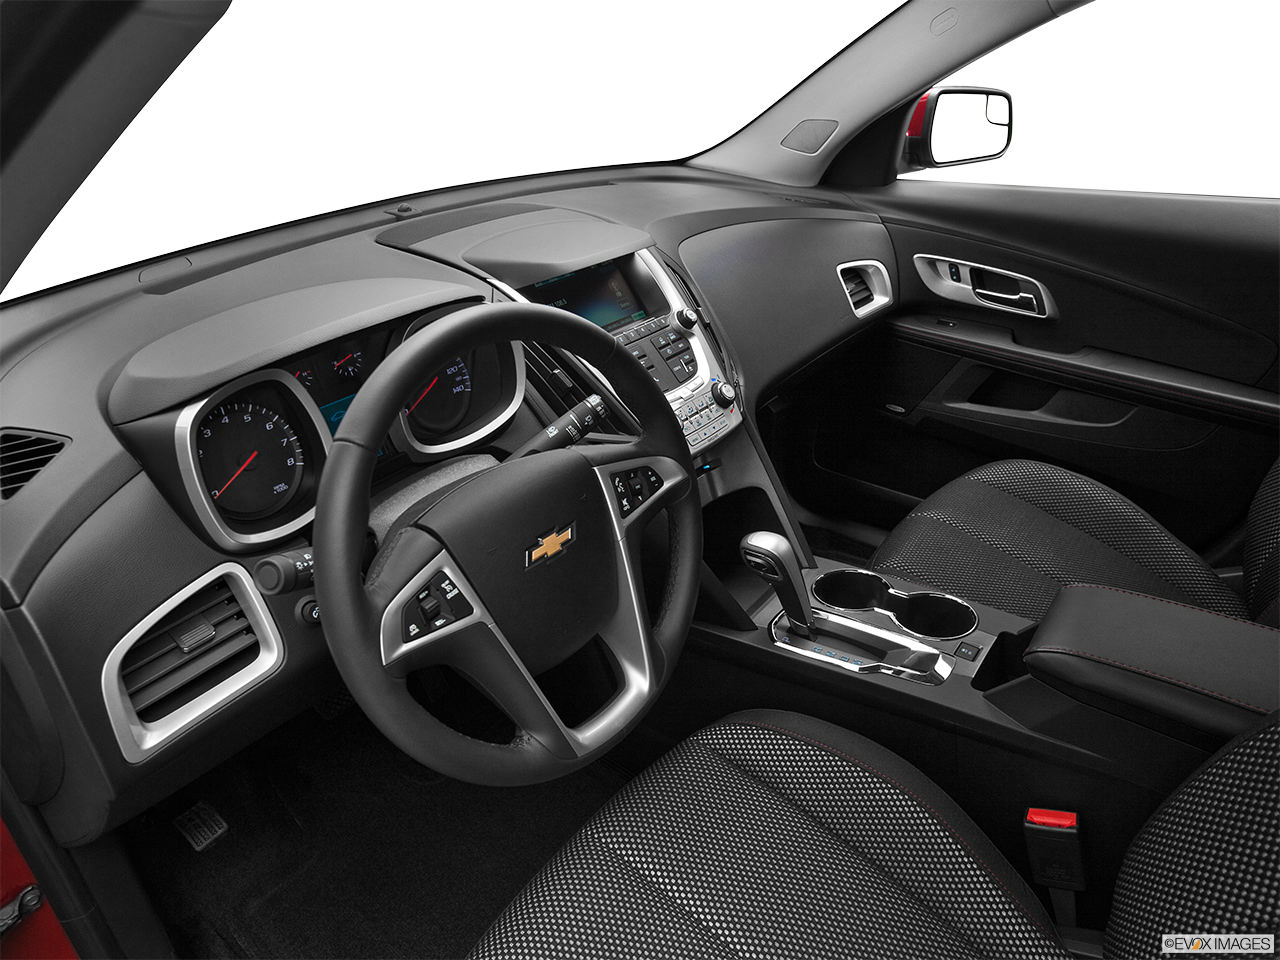 Chevrolet Equinox 2012 Interior